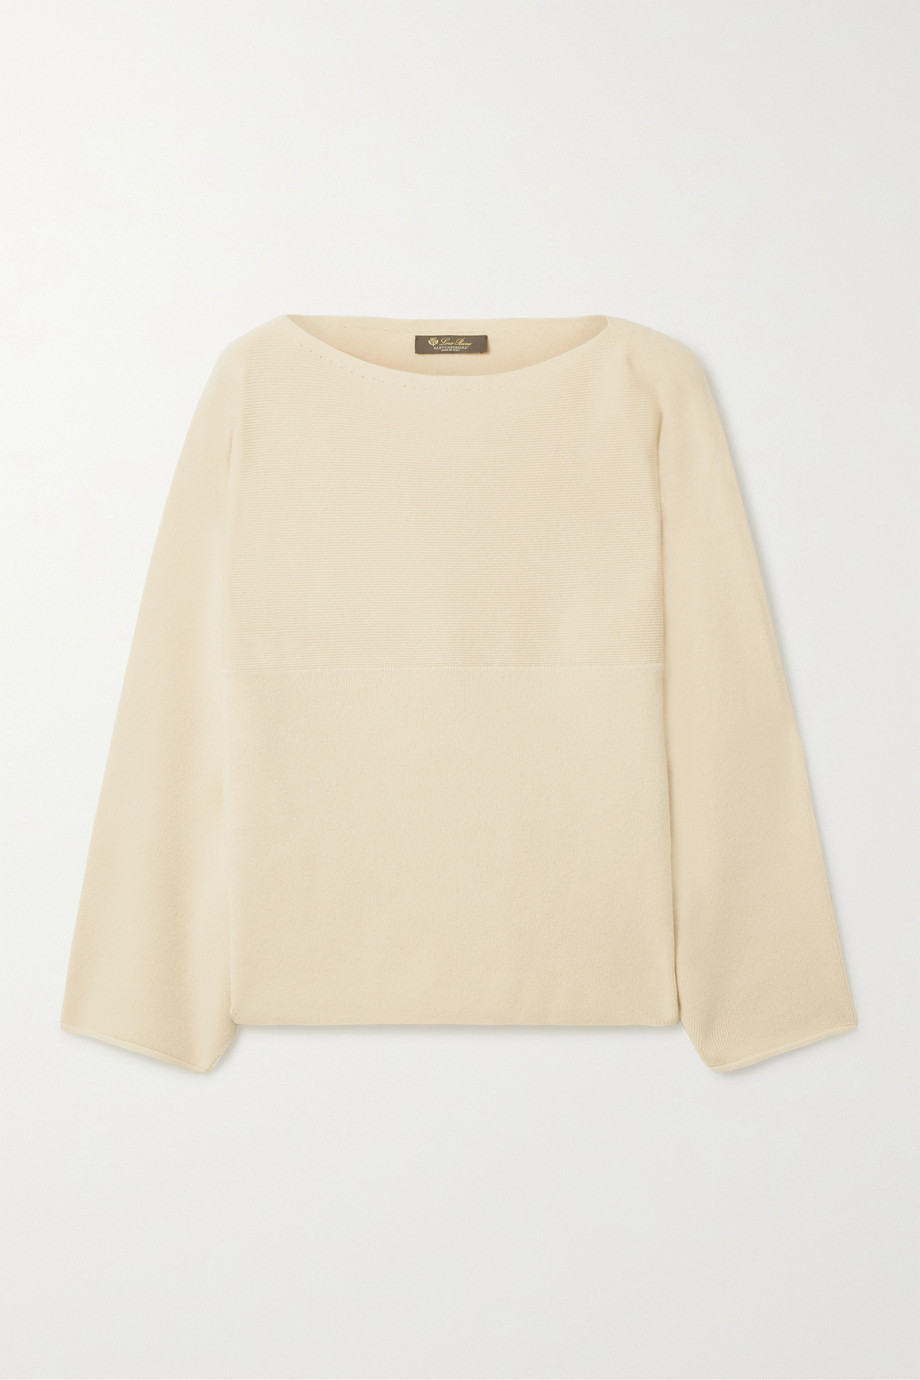 Loro Piana Cubetto Canary cashmere sweater